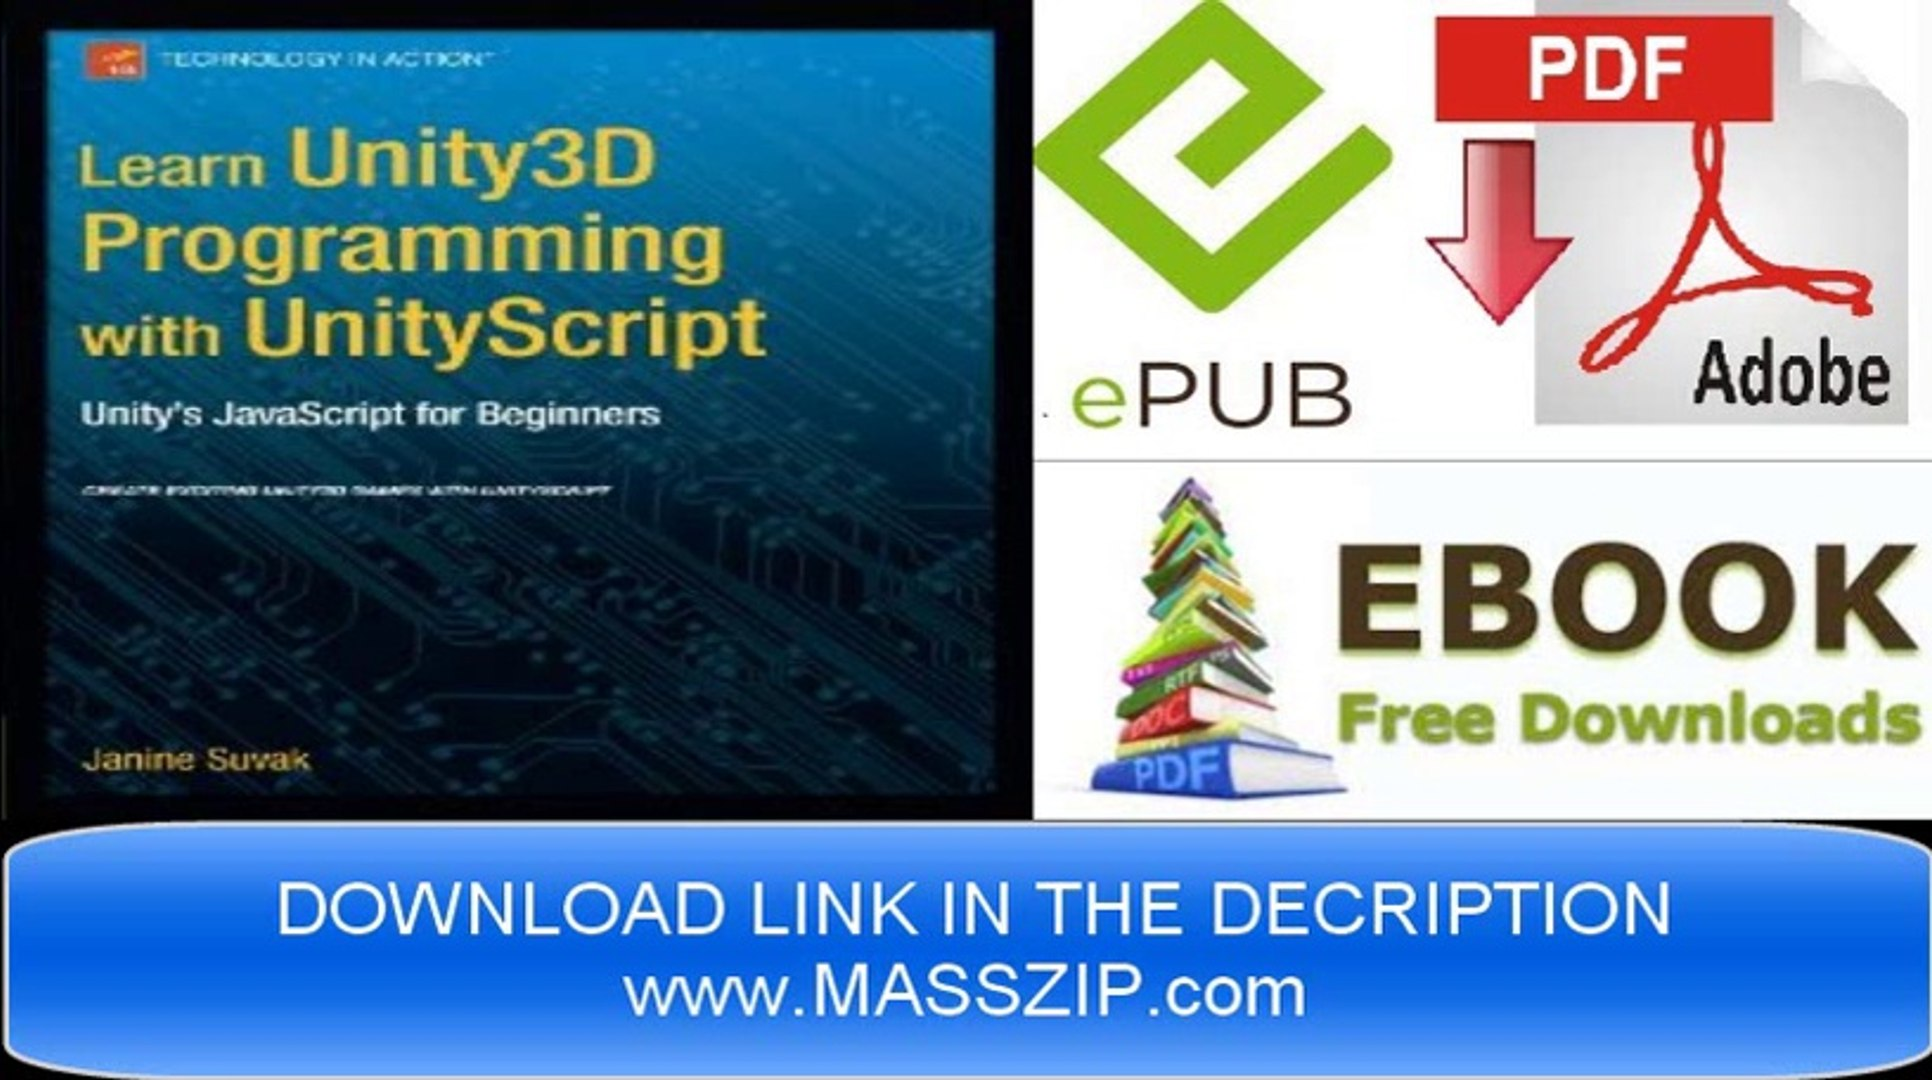 [Download eBook] Learn Unity3D Programming with UnityScript by Janine Suvak  [PDF/EPUB]